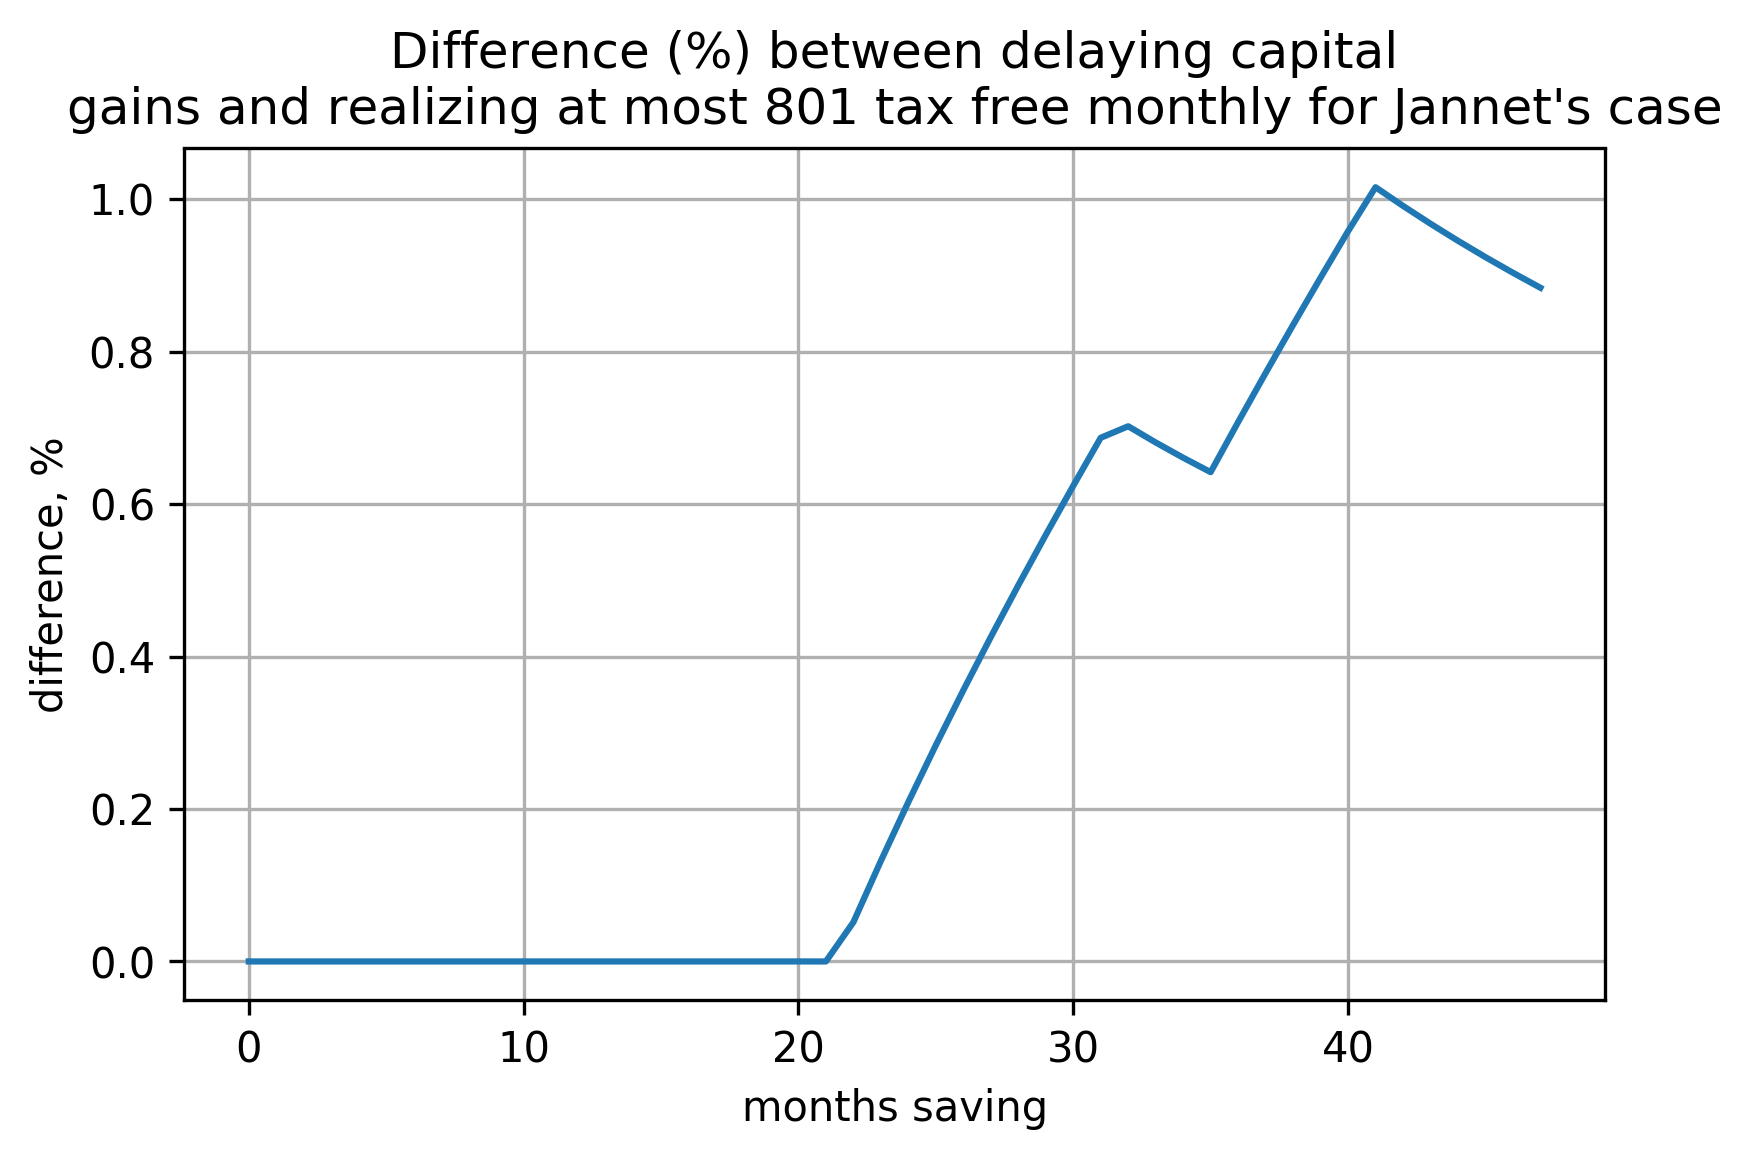 a plot showing how difference (in percents) between the two cases (delaying capital gains and realizing at most 801 EUR tax free yearly) depends on number of months invested for Jannet's case